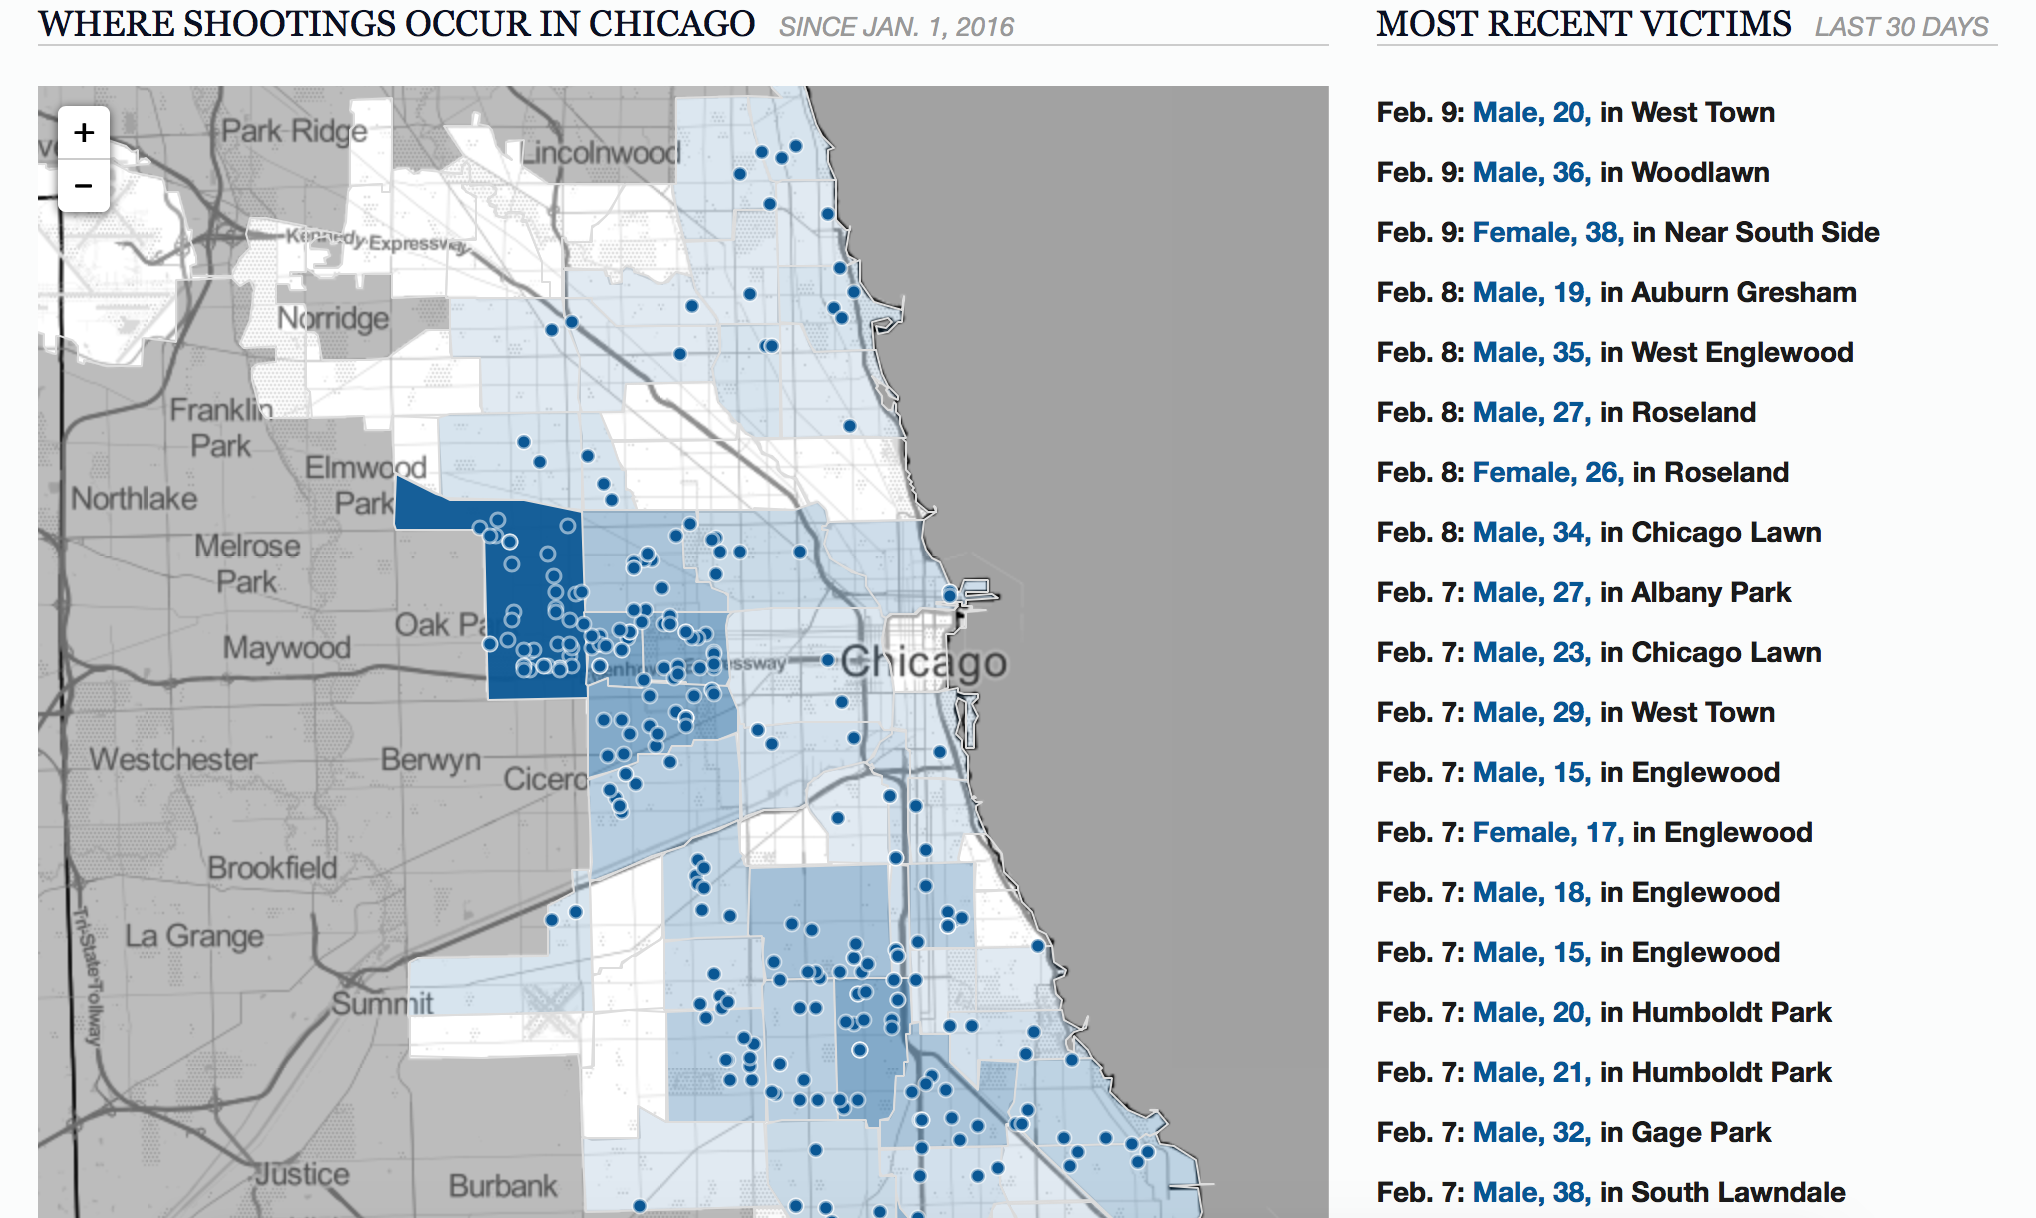 Shootings In Chicago Map.East Side Chicago Shooting Victims Update Feb 12 2016